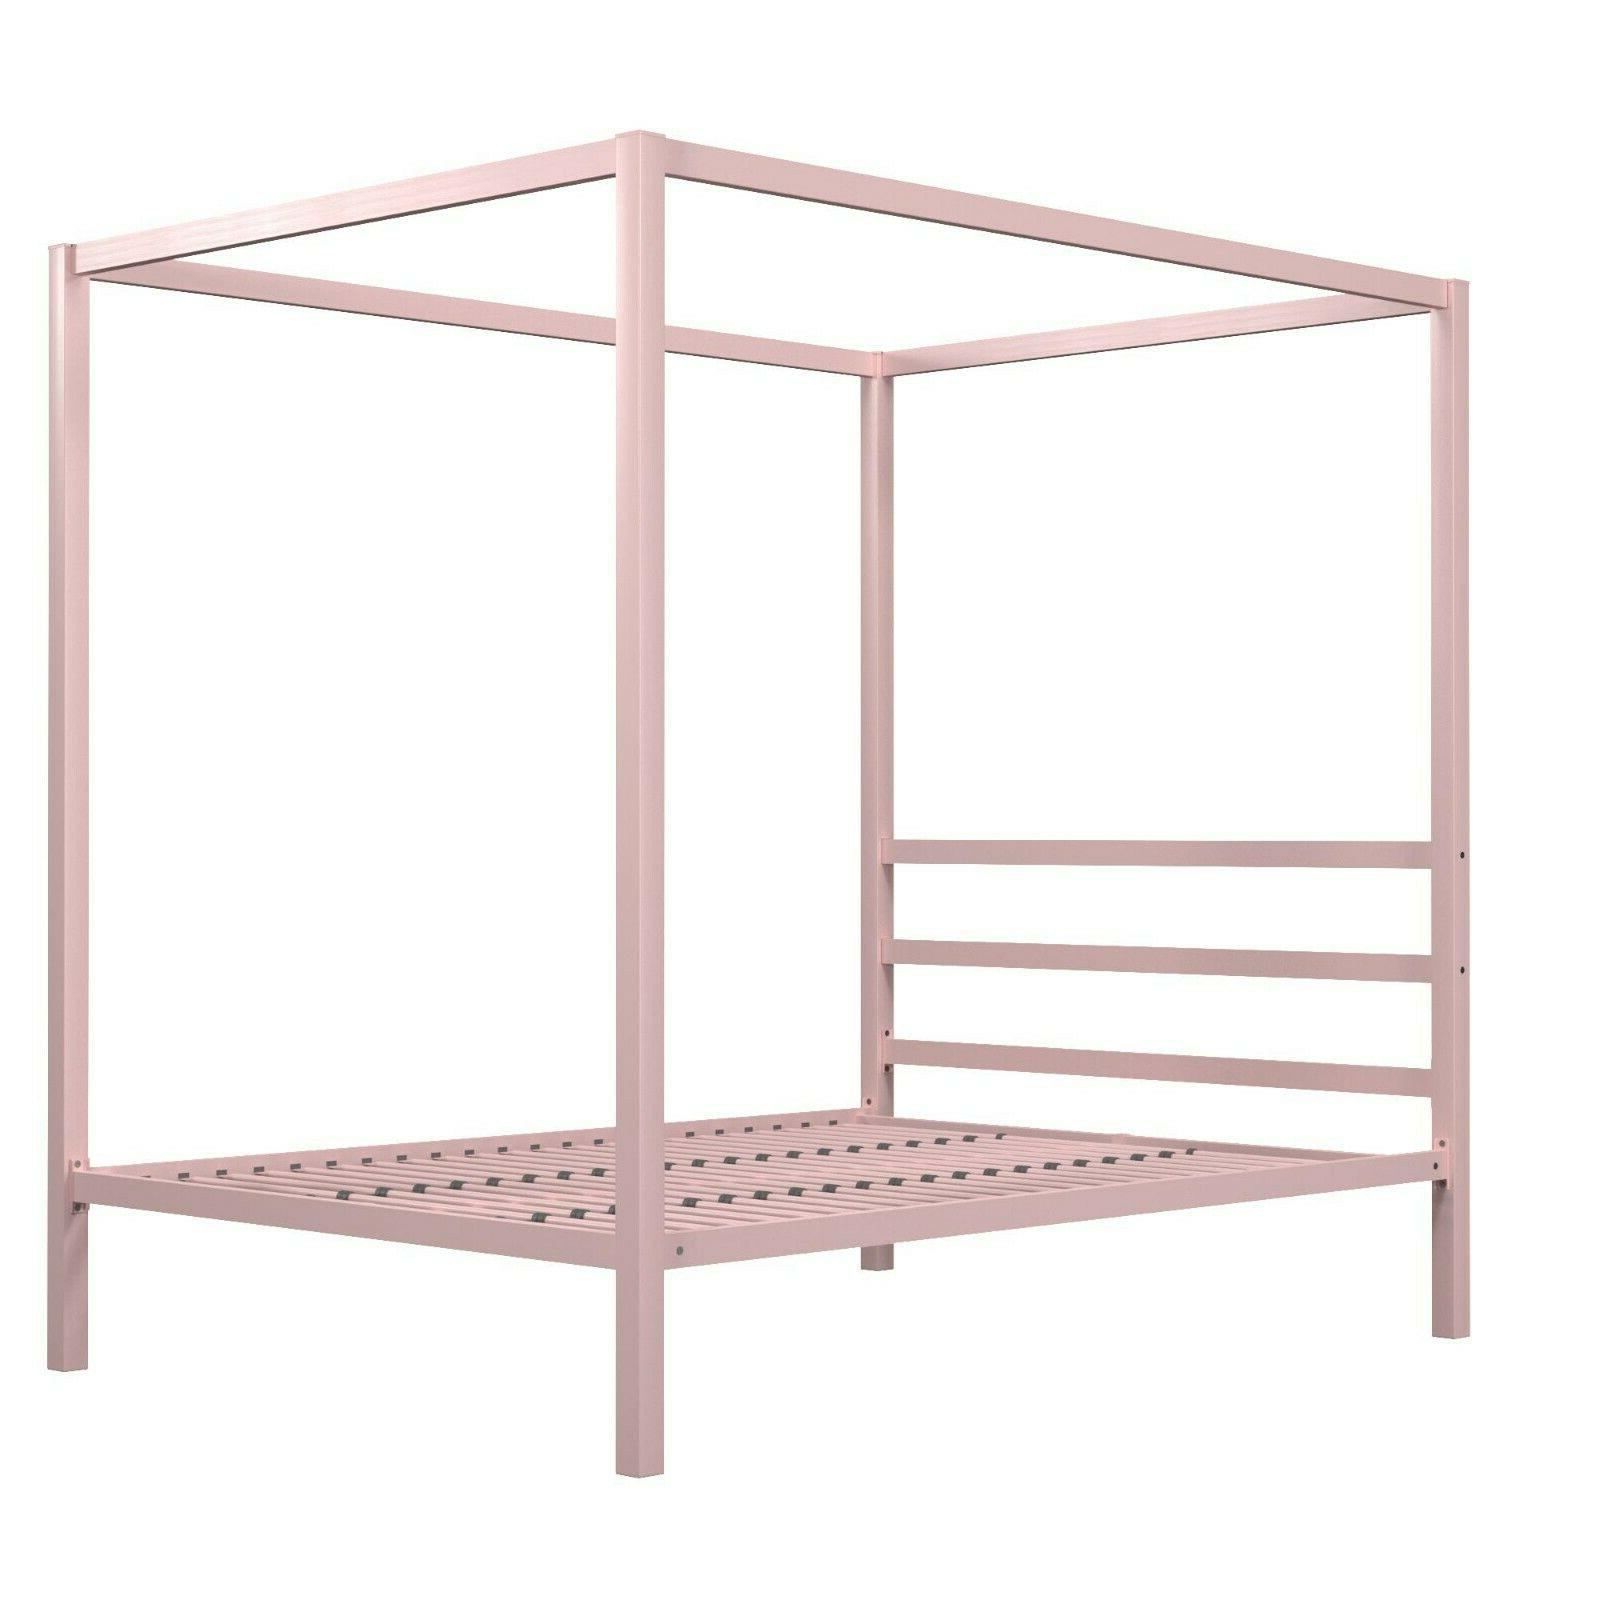 RealRooms Metal Modern Bed Frame, Colors Sizes